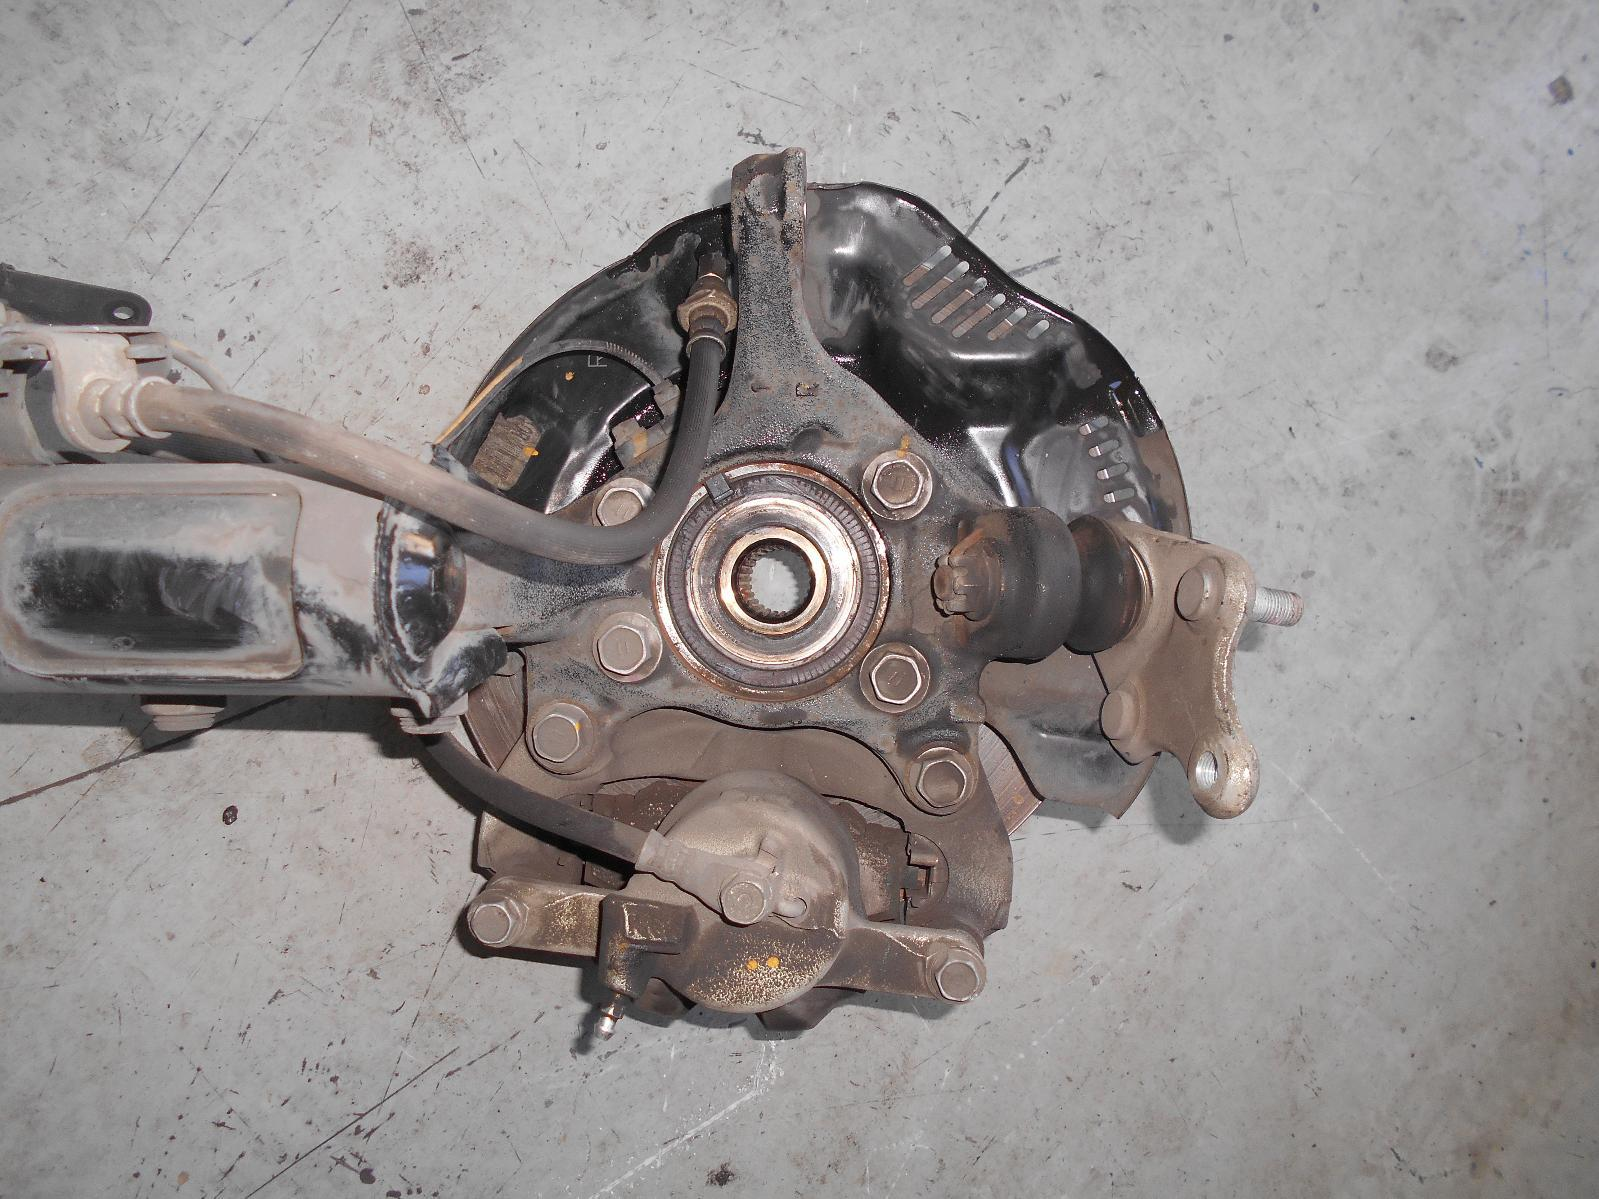 TOYOTA COROLLA, Left Front Hub Assembly, ZRE182R, BOLT ON BEARING CARRIER TYPE, 10/12-